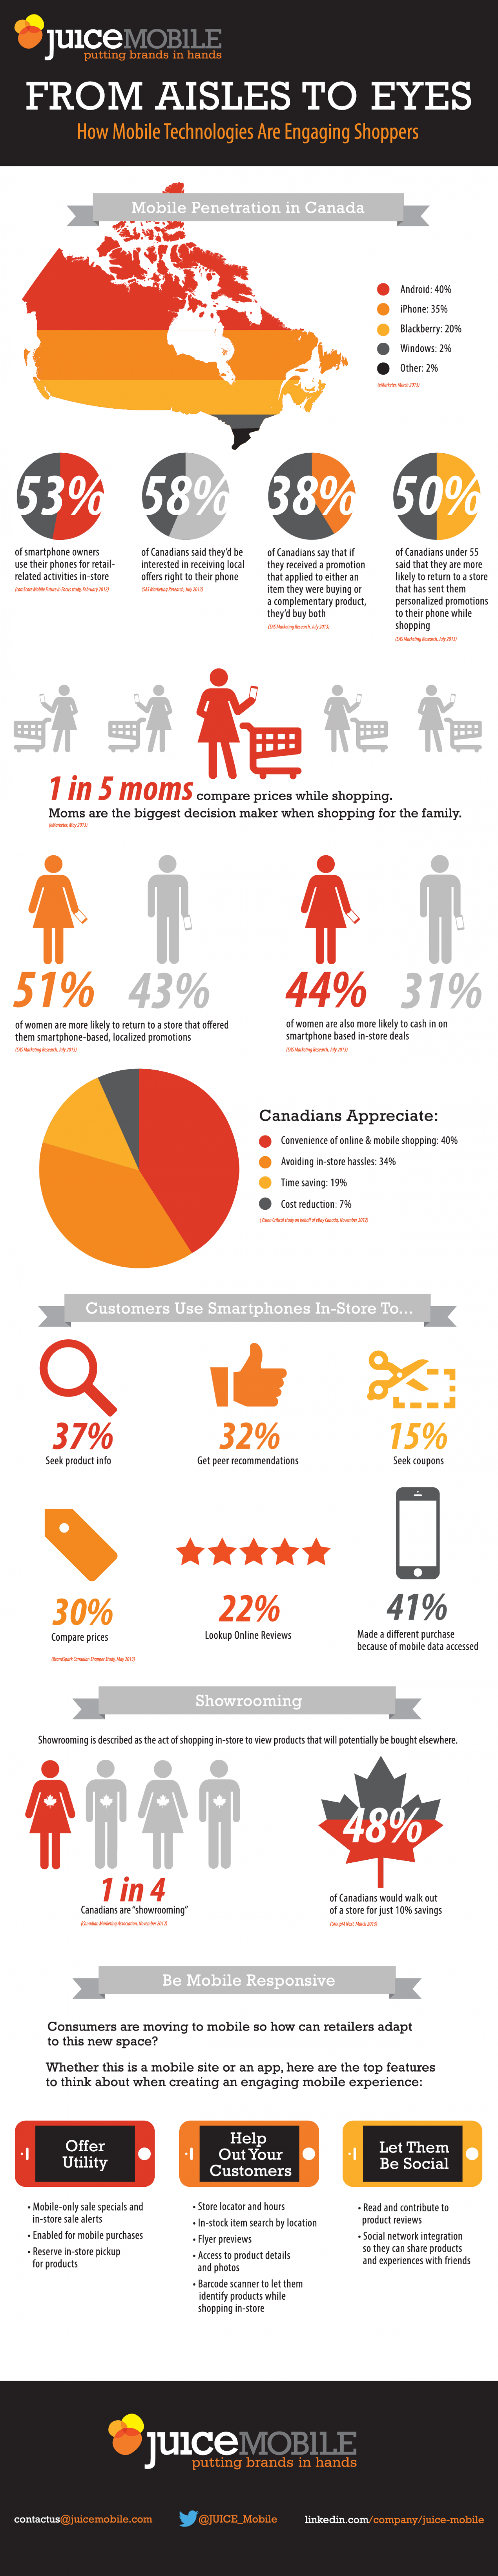 Juice Mobile - From Aisles to Eyes: How Mobile Technologies Are Engaging Shoppers Infographic